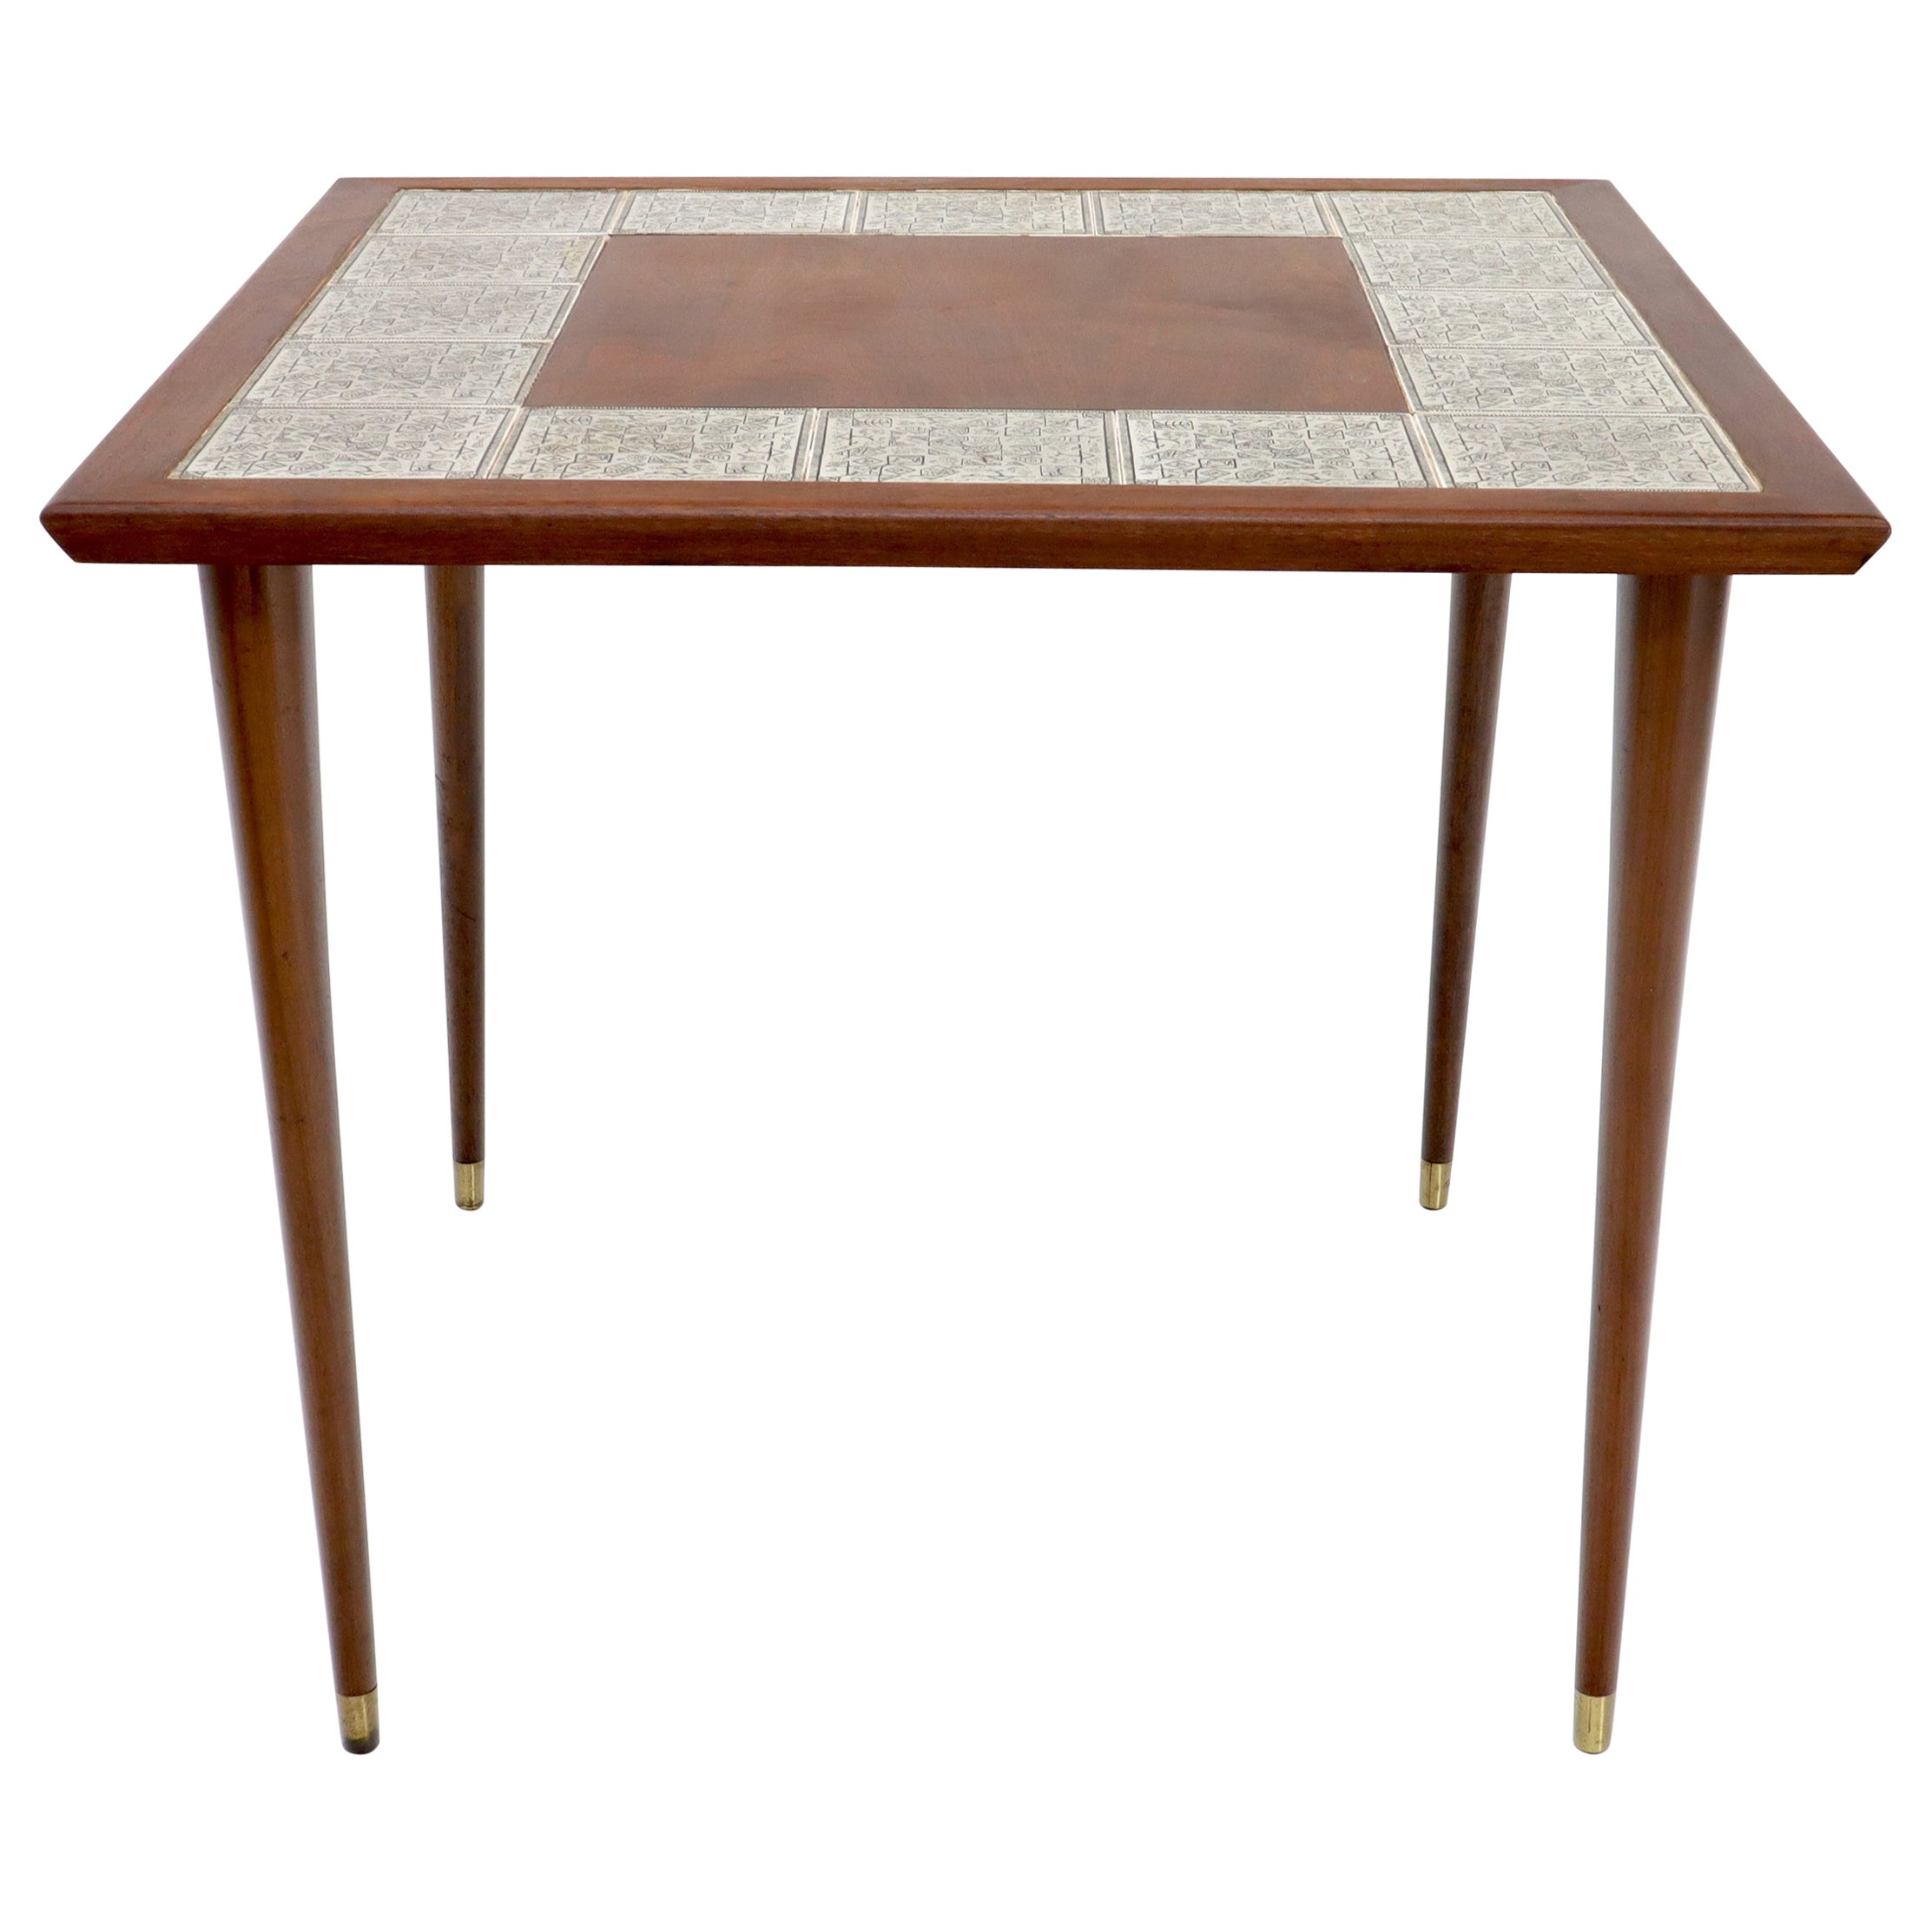 Oiled Walnut Decorative Art Tile Top Game Table on Tapered Legs Brass Tips